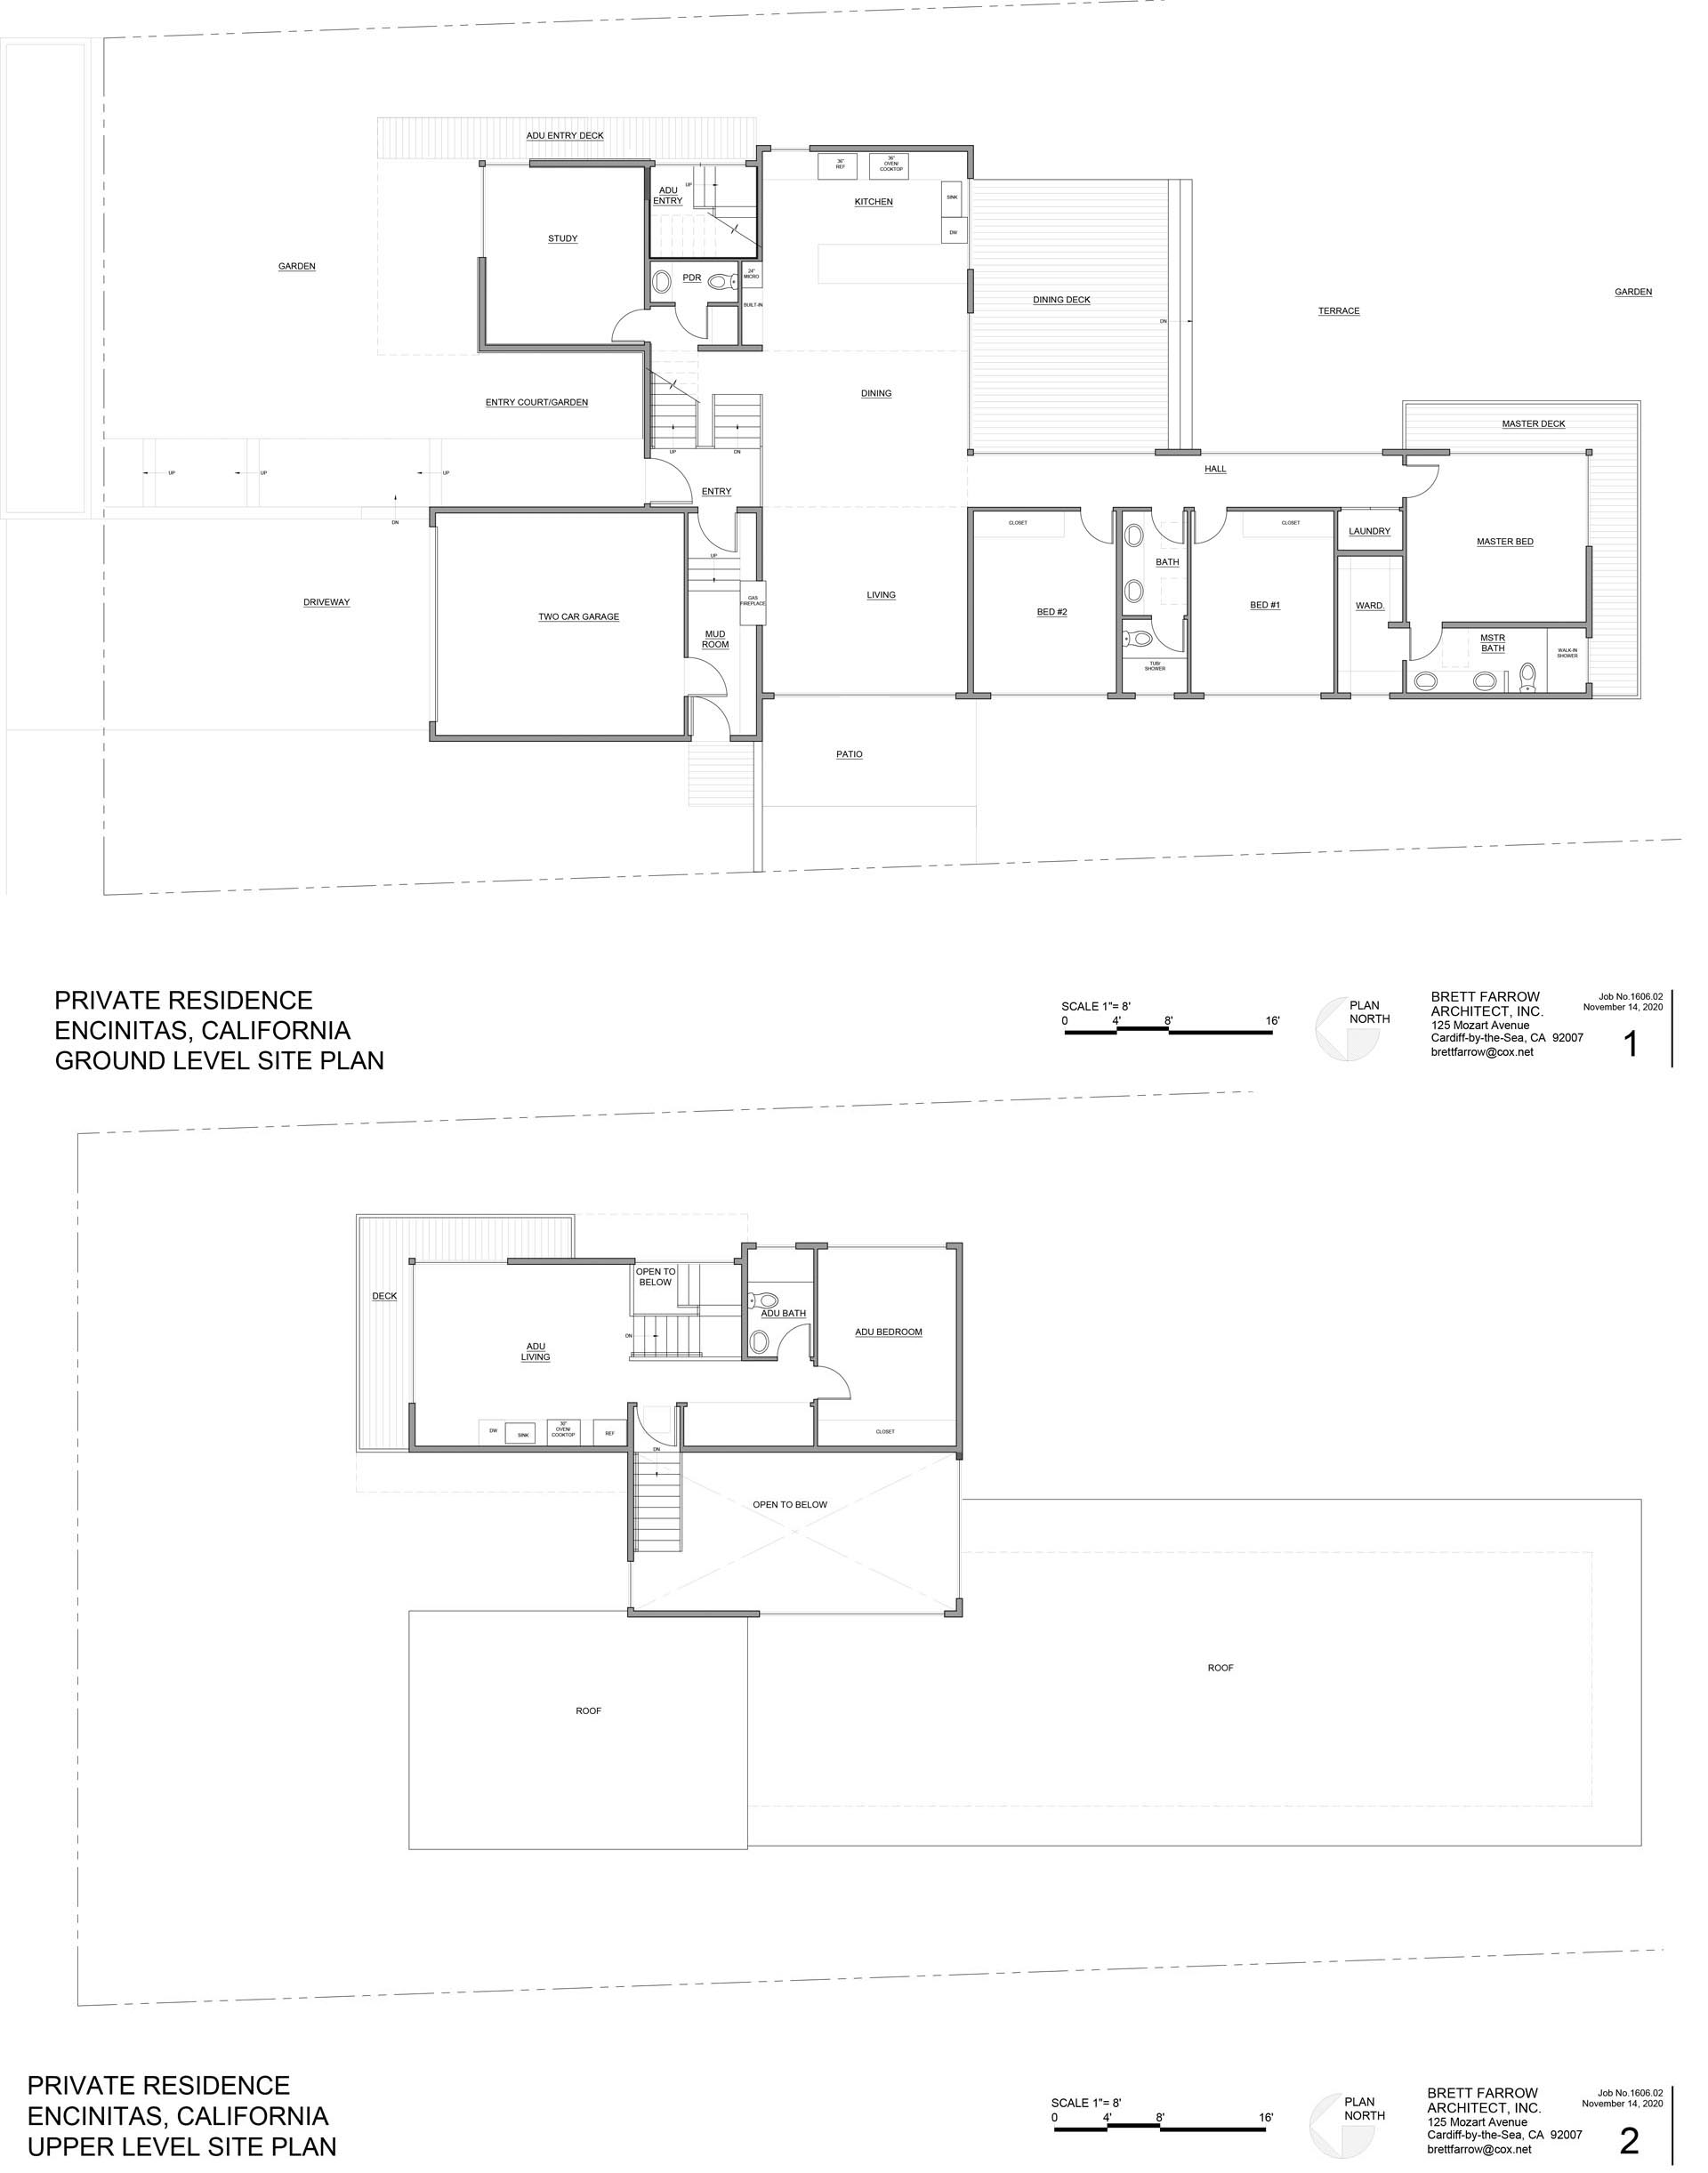 The floor plan of a modern home with an accessory dwelling unit for visiting relatives.